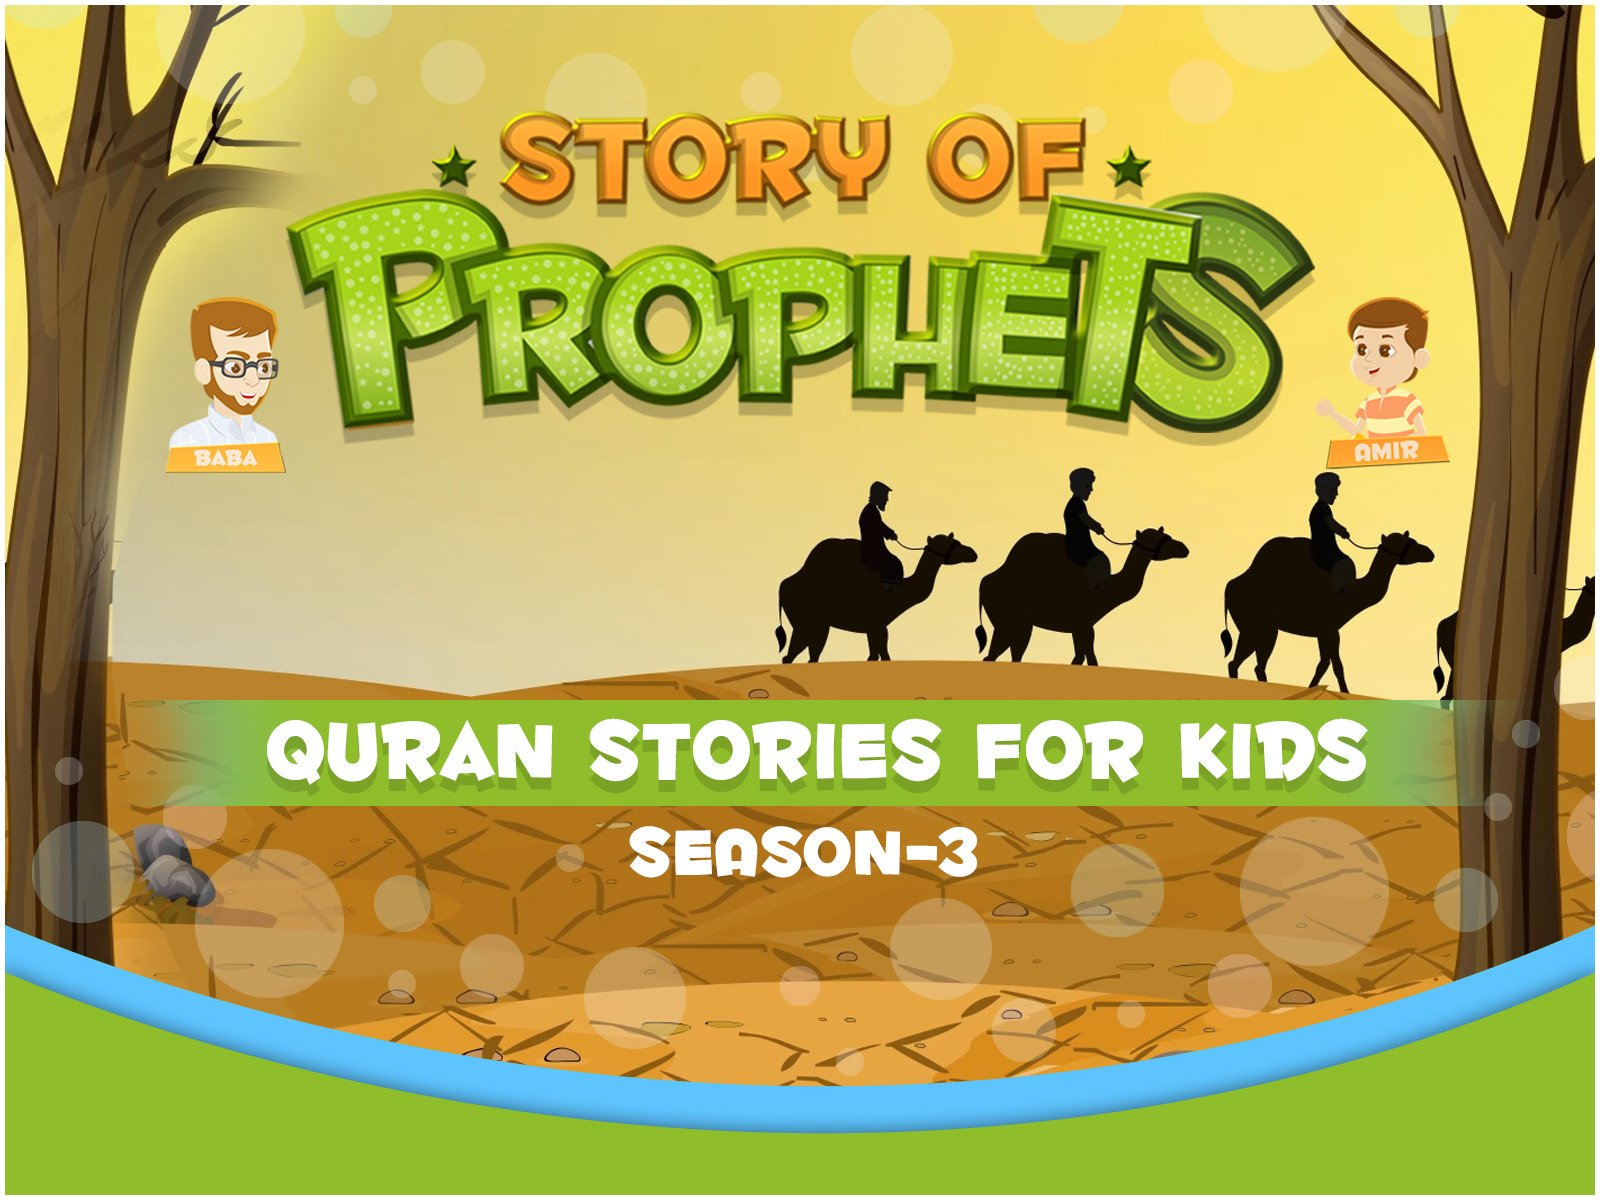 Quran Stories for Kids - Season 3